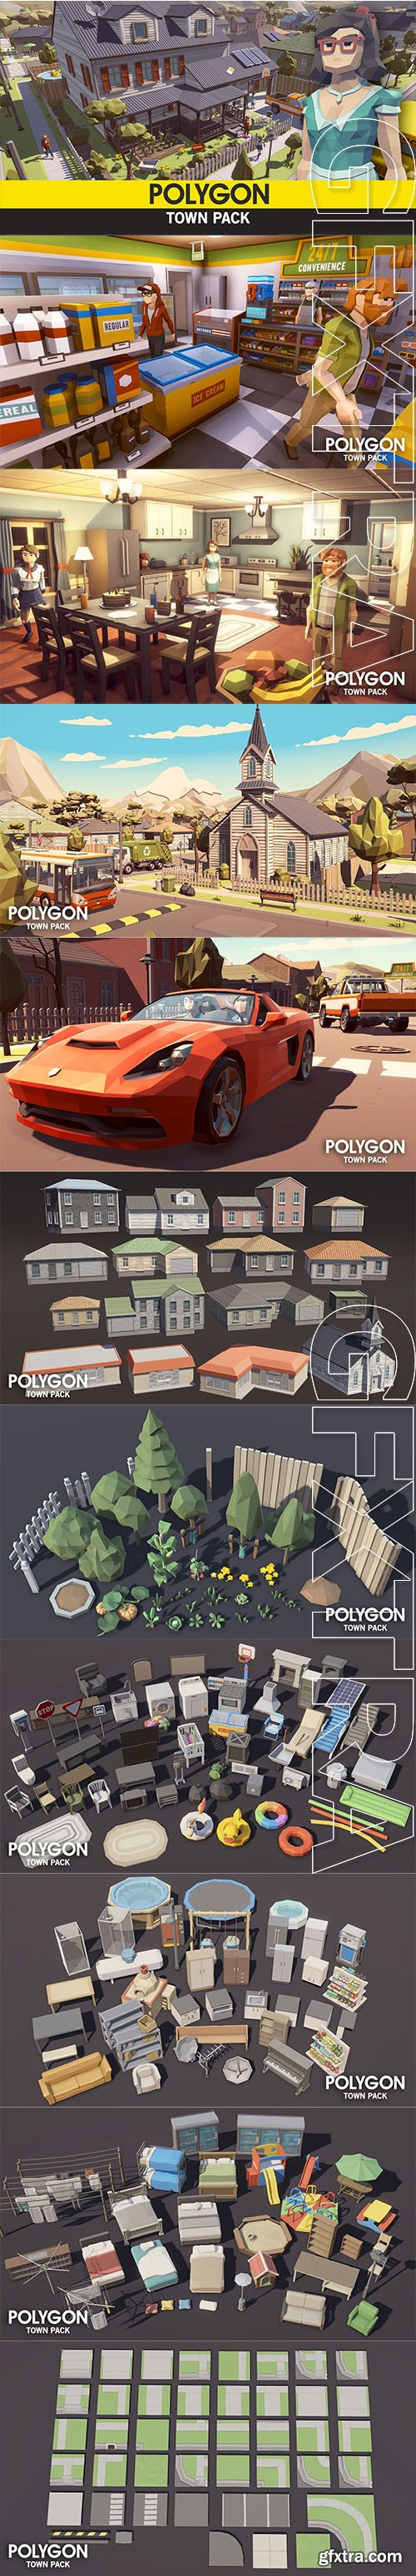 Cgtrader - POLYGON - Town Pack Low-poly 3D model